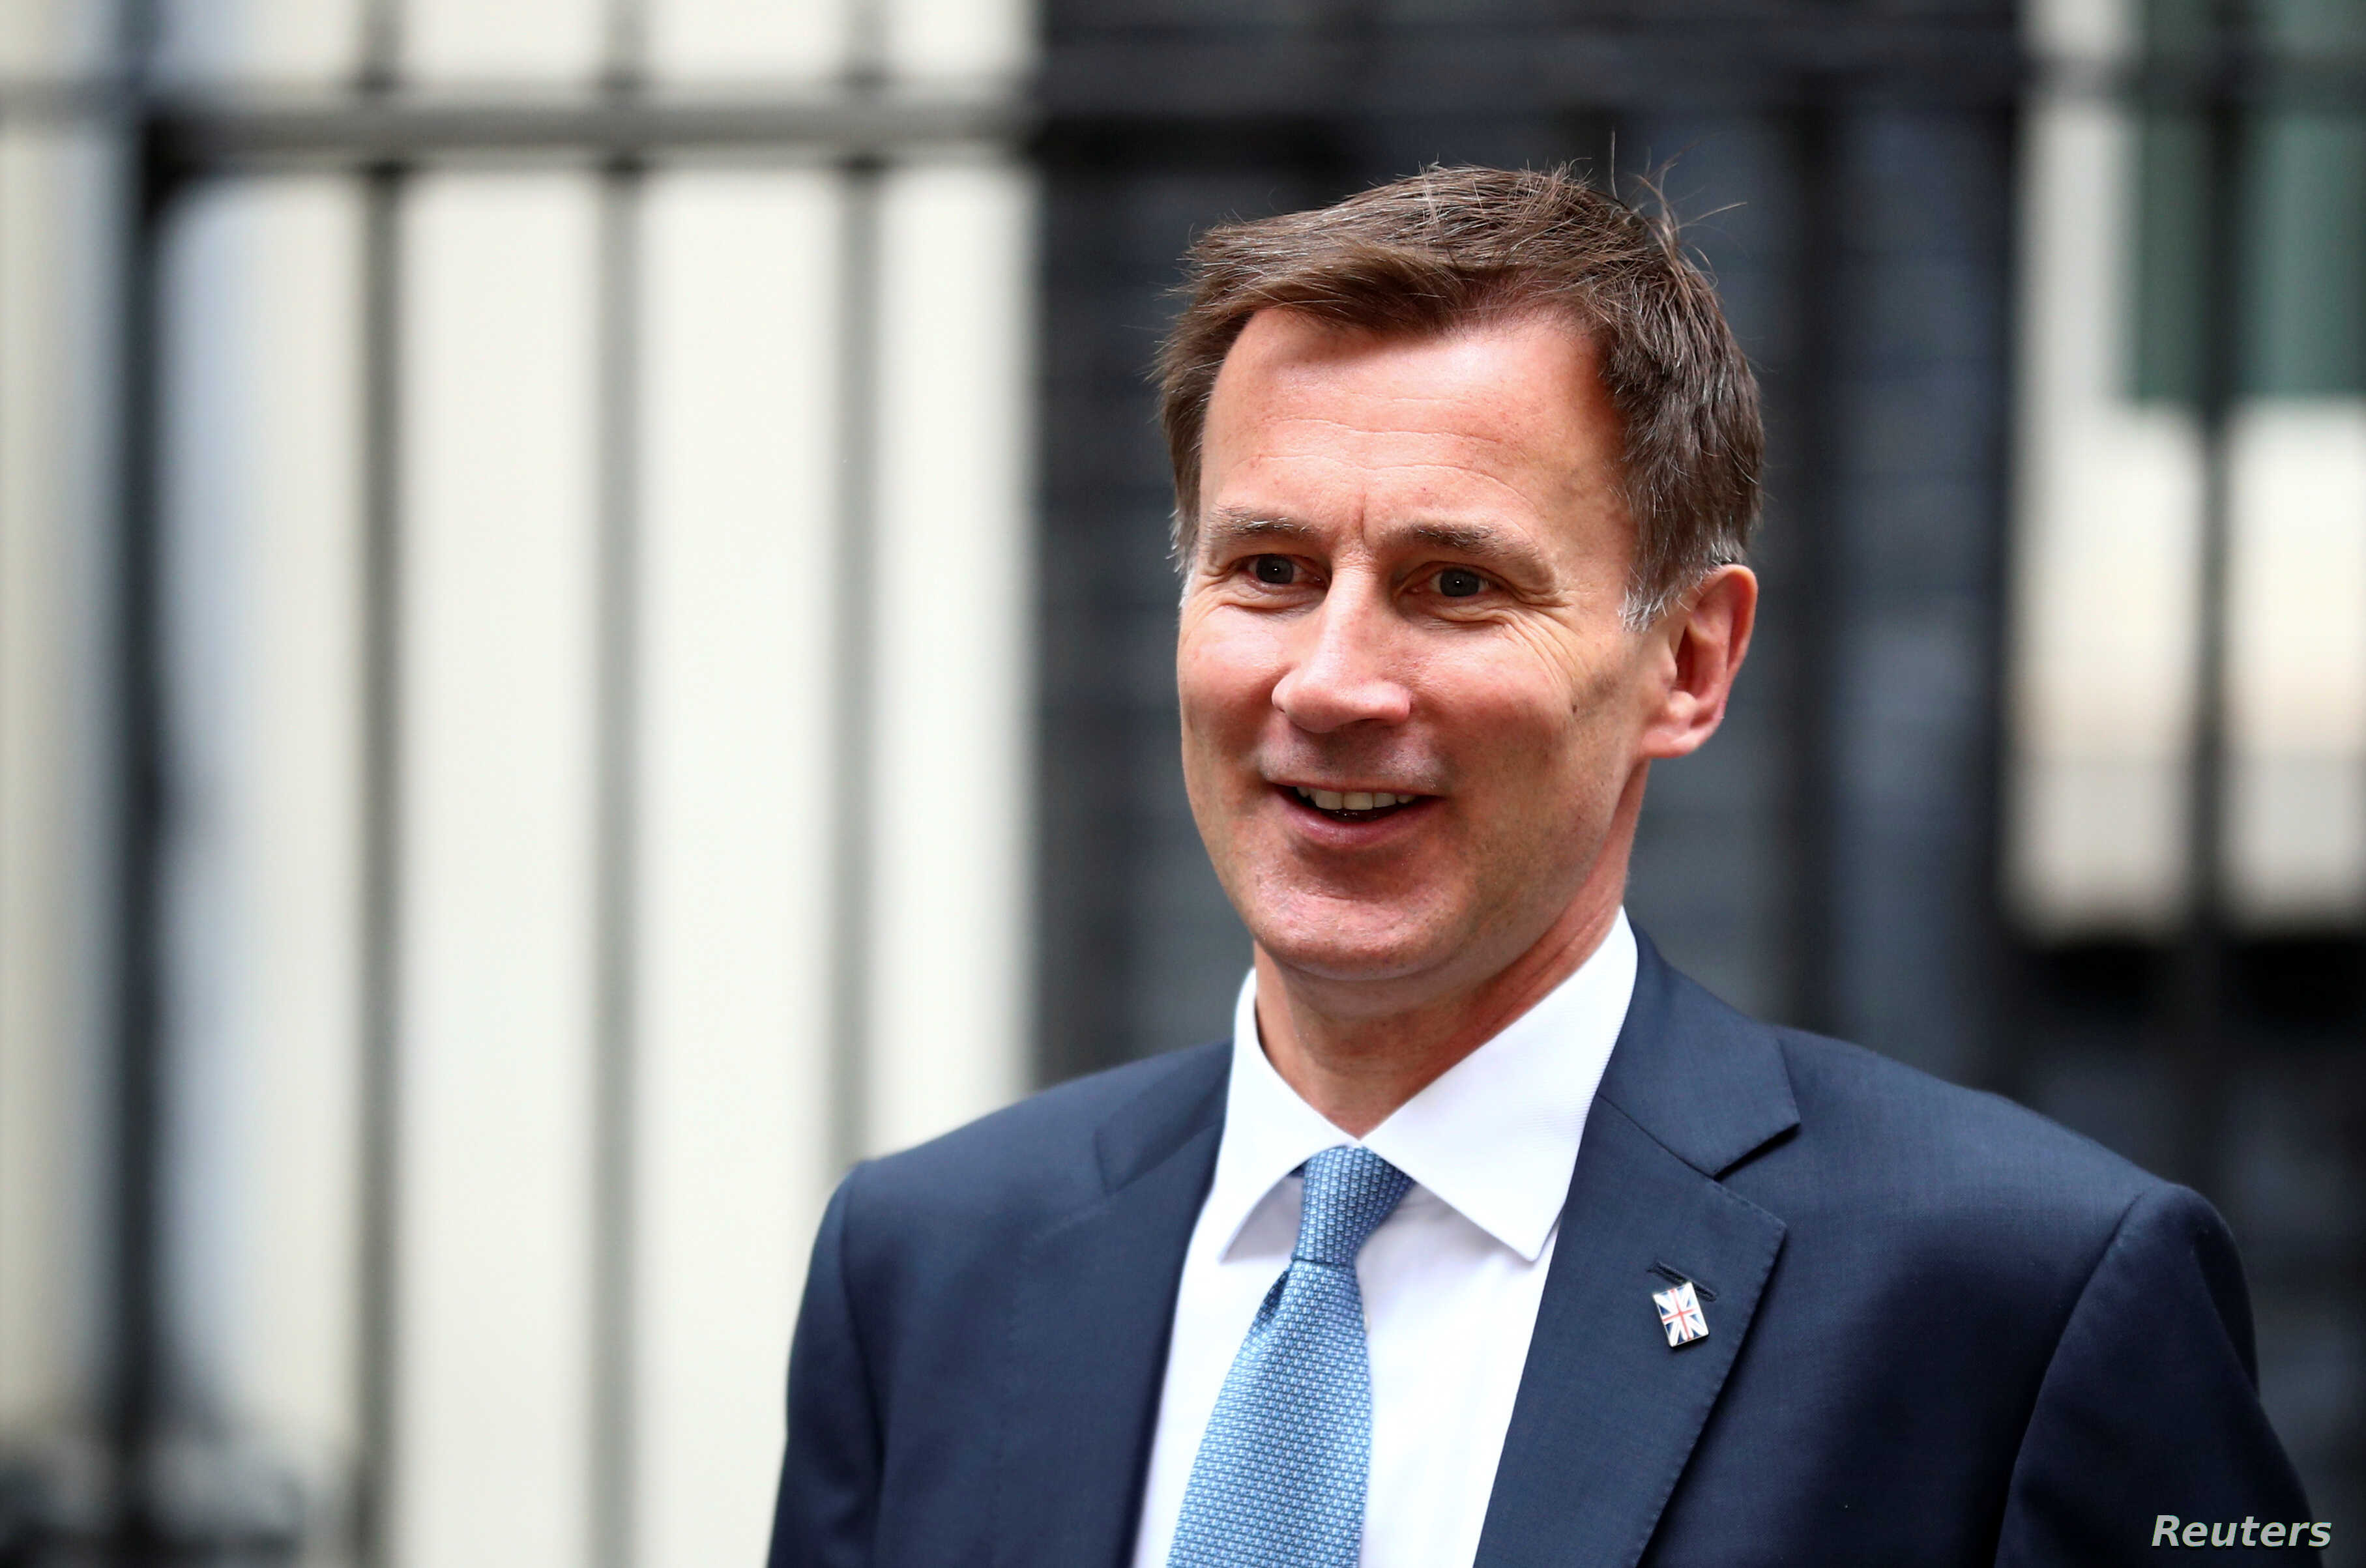 Britain's Foreign Secretary and Conservative Party leadership candidate Jeremy Hunt is seen outside Downing Street in London, Britain, July 22, 2019.